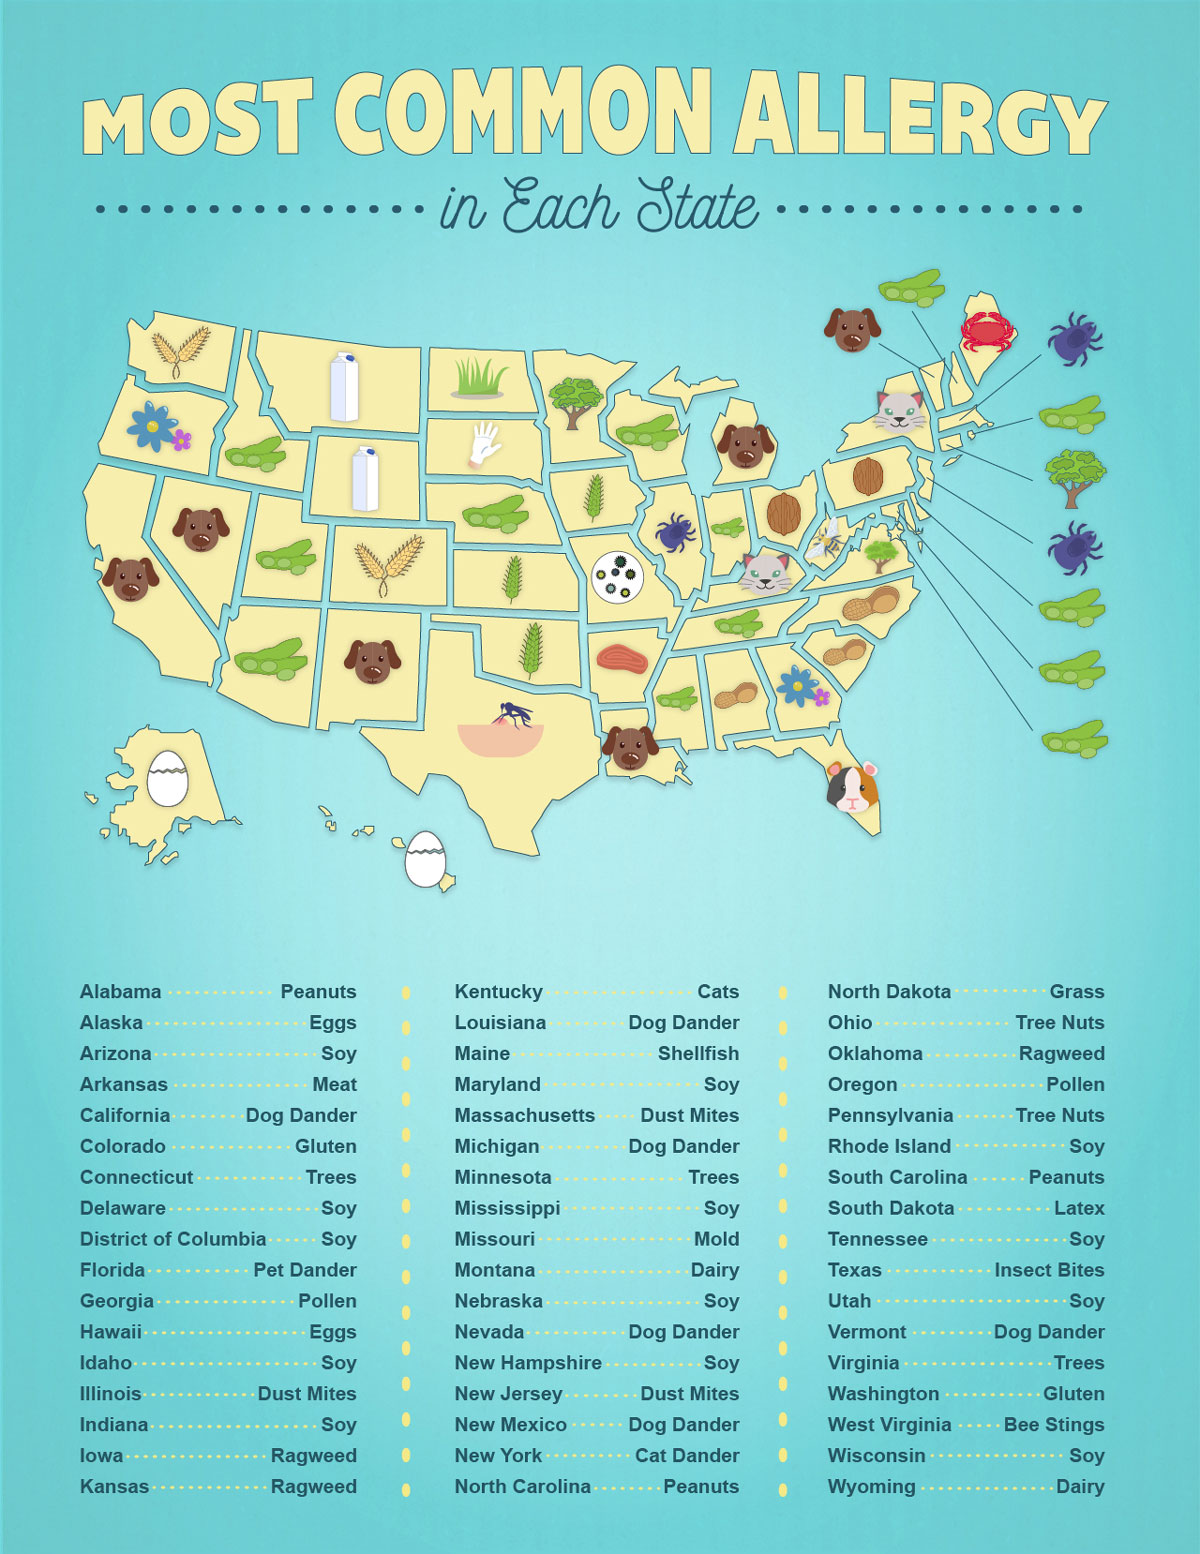 most-common-allergy-by-state-map